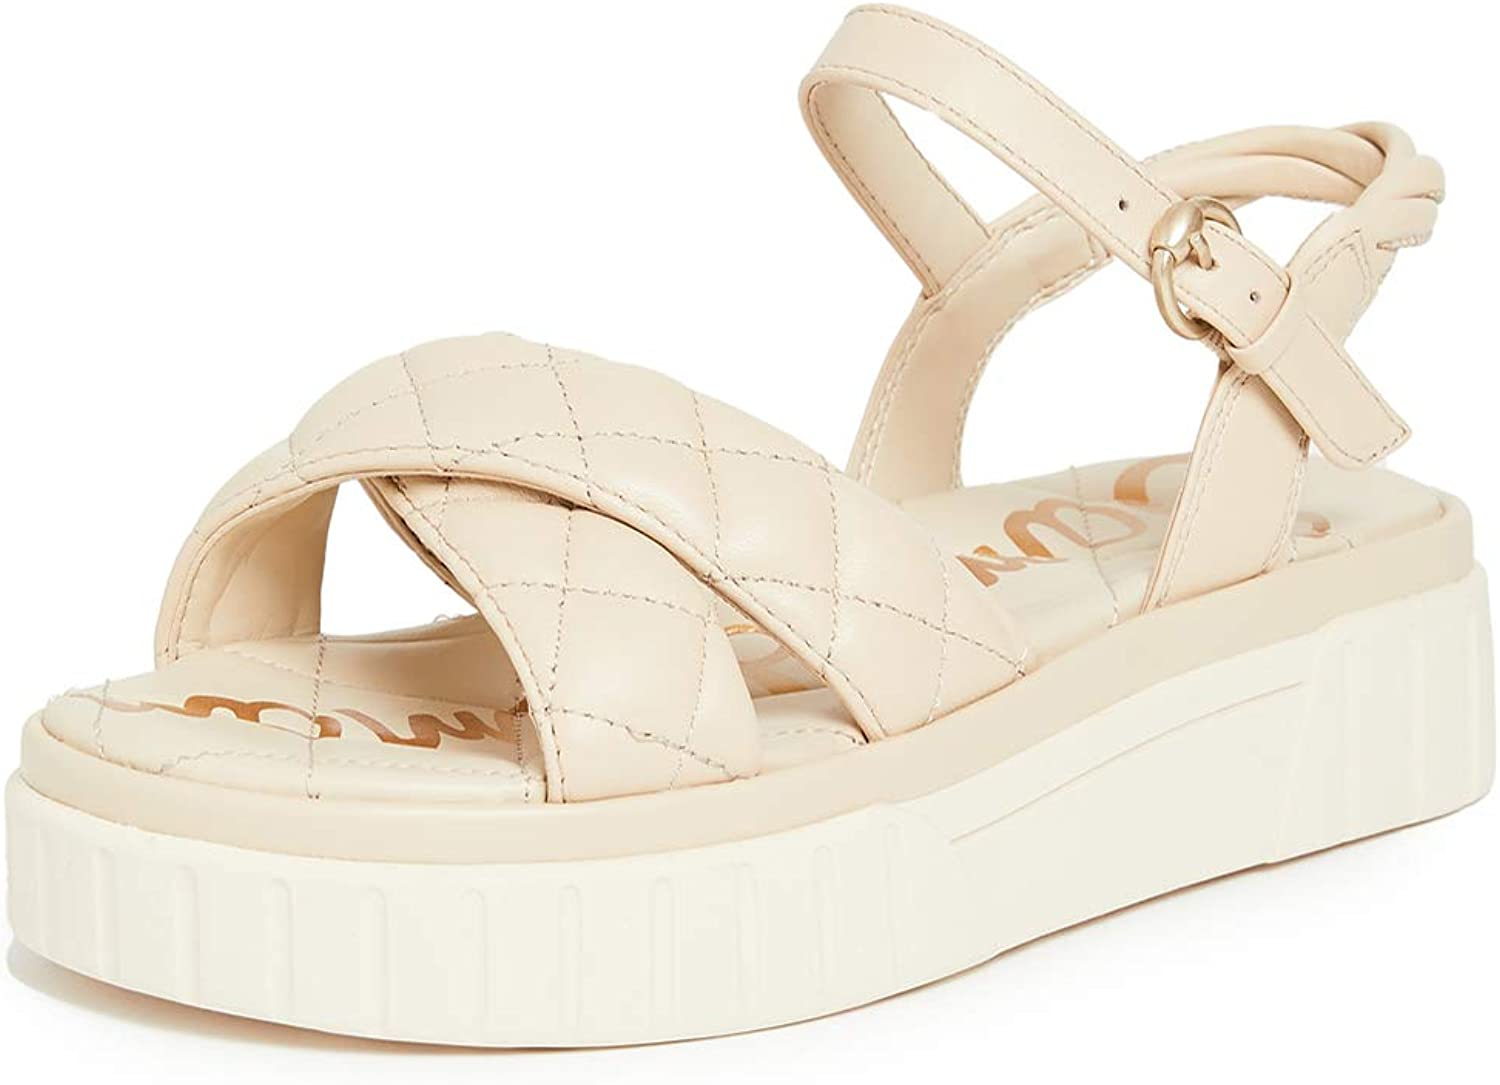 Special price for a limited time Sam Edelman Women's Gavril Platform Sandals Atlanta Mall